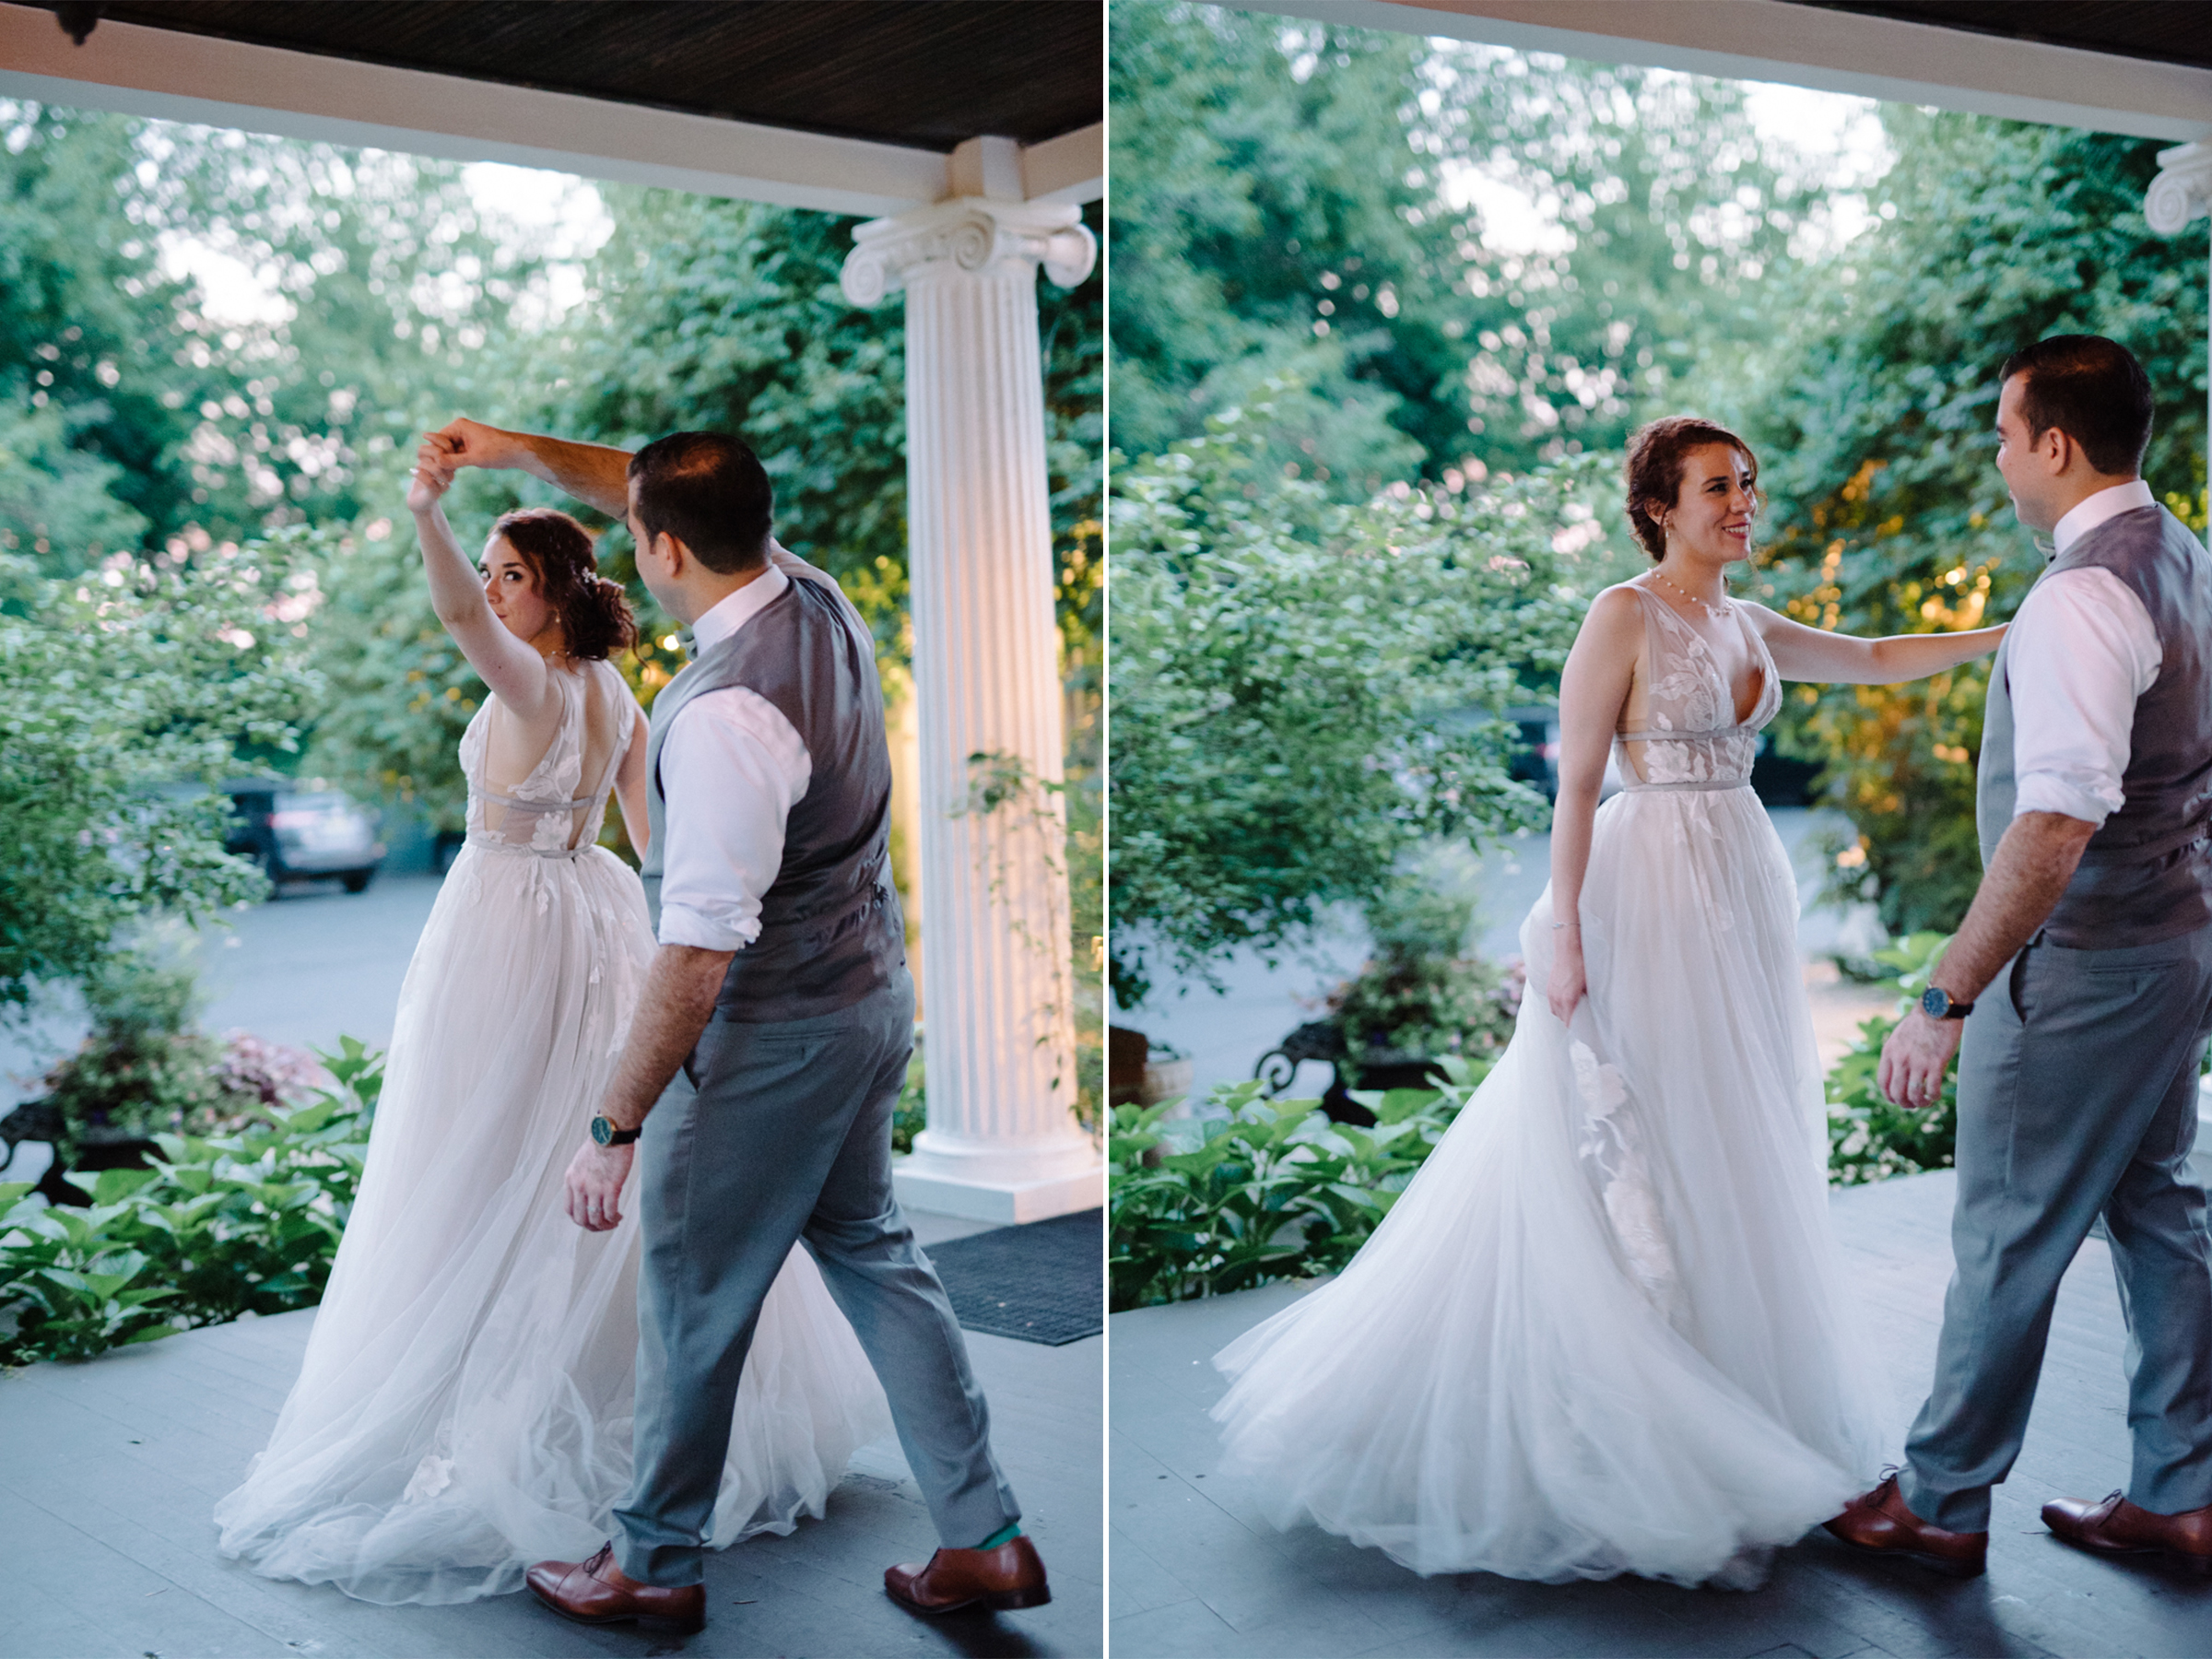 Feast at Round Hill Wedding-Kenny + Melissa- Bride and Groom Portraits at Dusk-Hudson Valley New York - Olivia Christina Photo-1.jpg